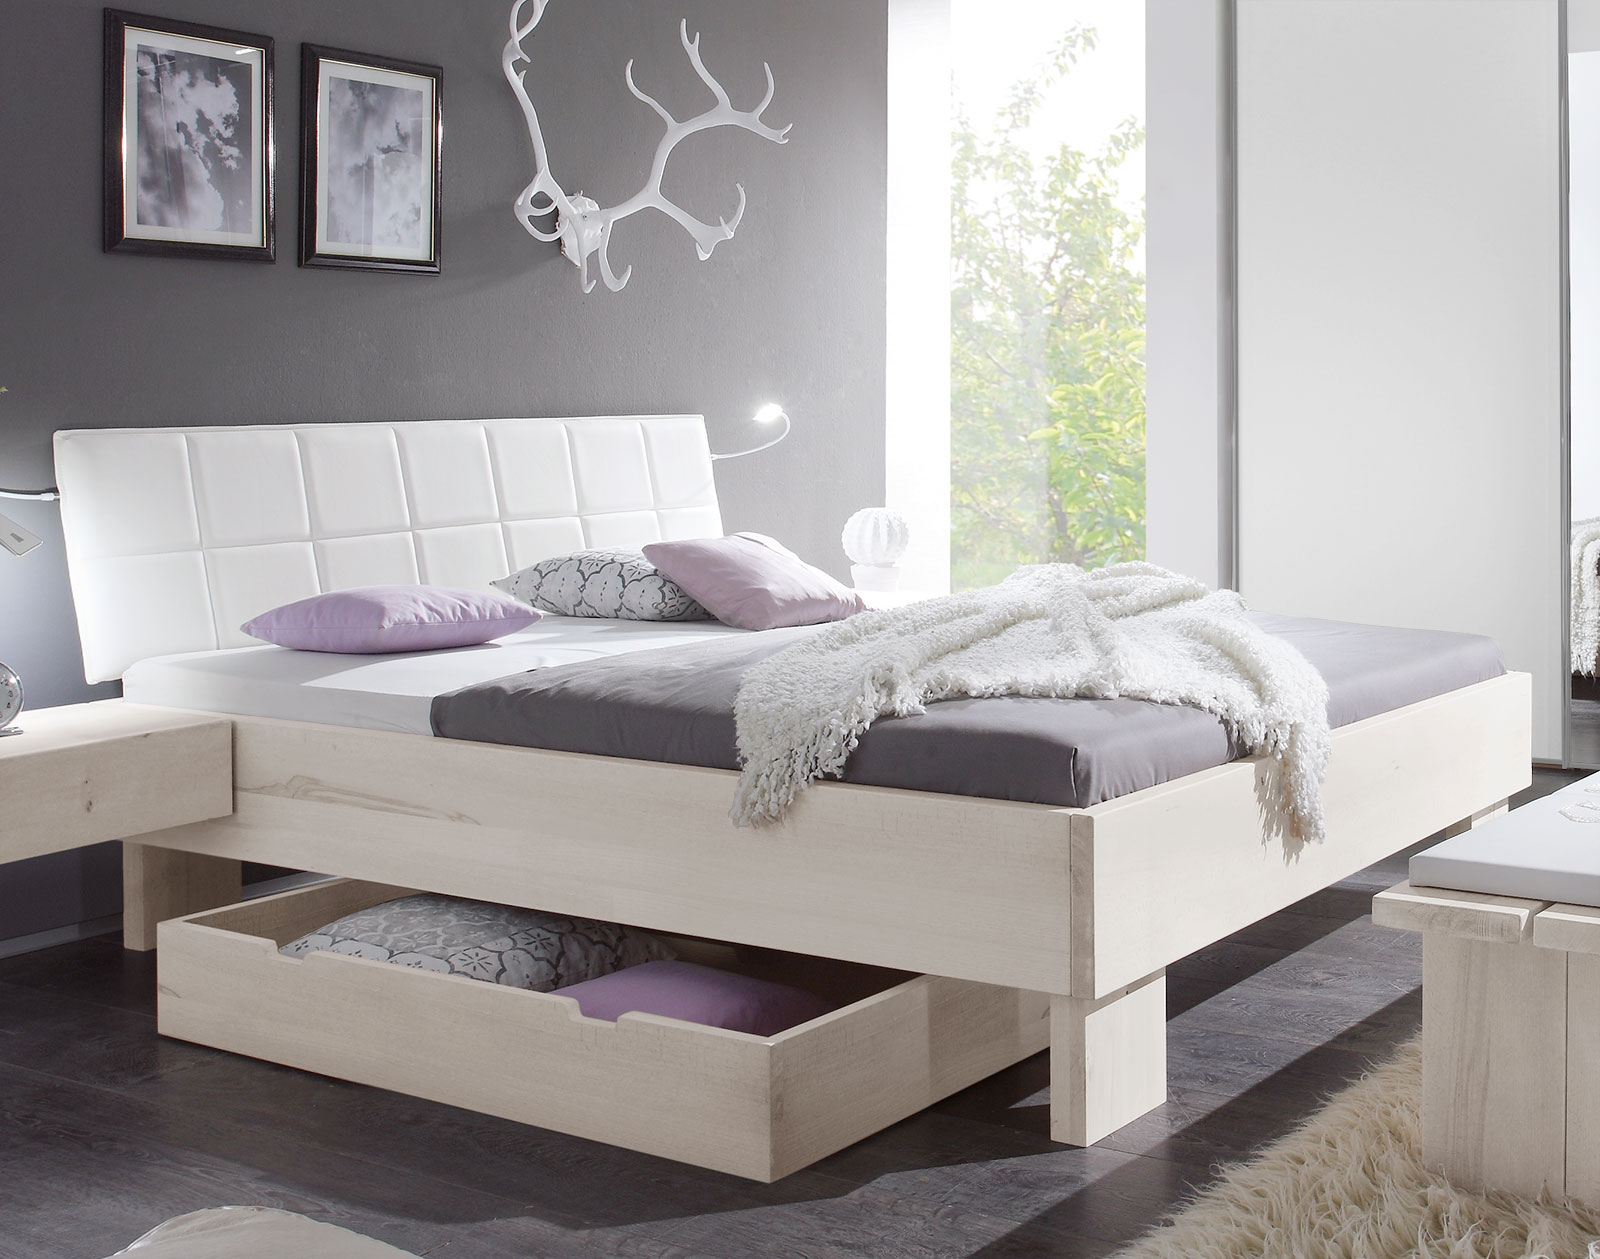 kleine schlafzimmer ideen. Black Bedroom Furniture Sets. Home Design Ideas